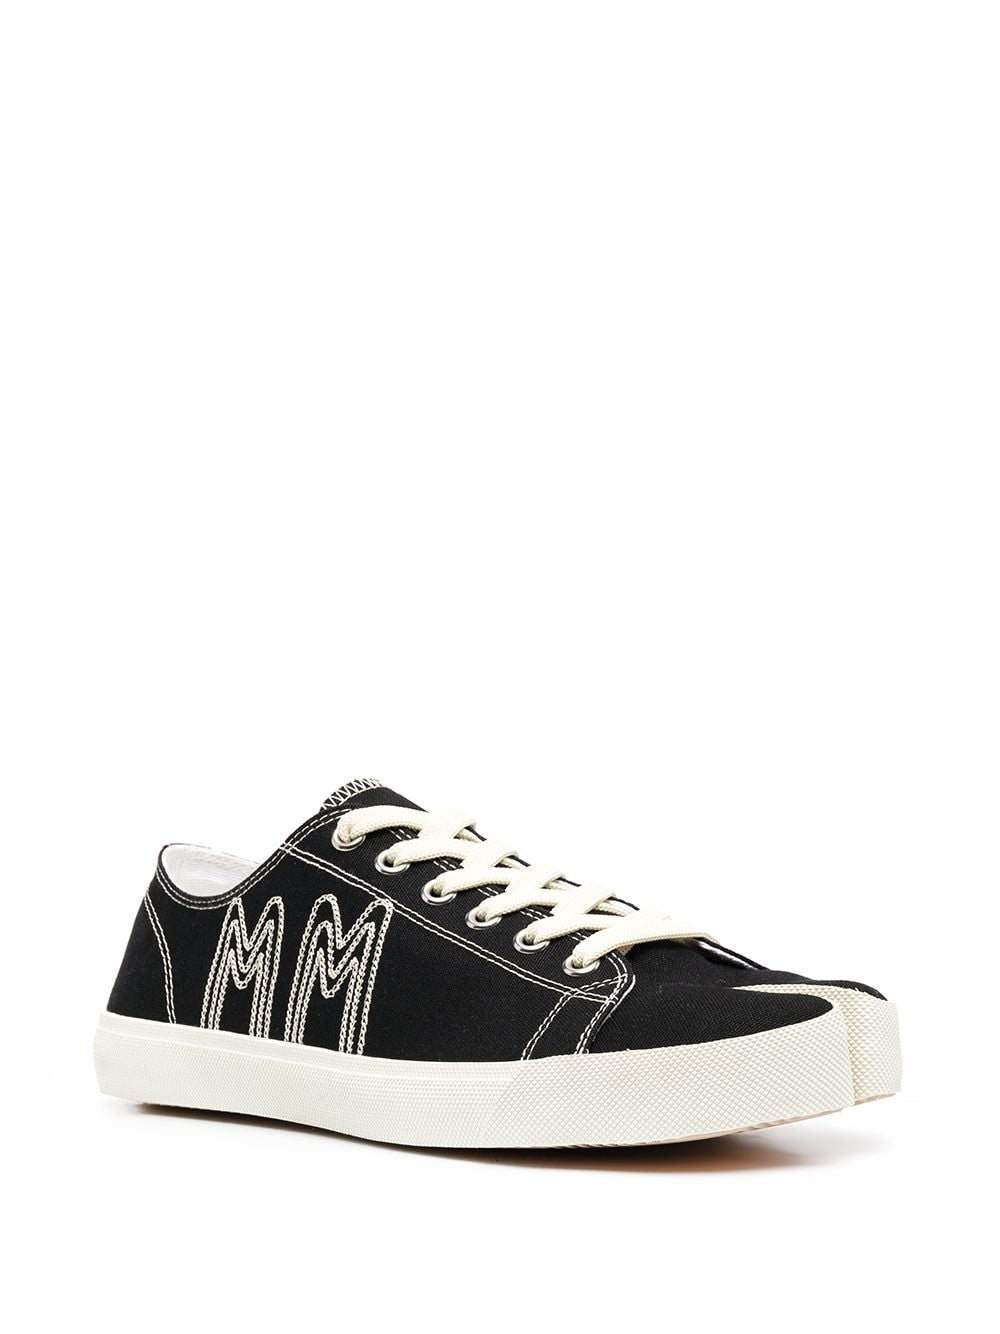 MARGIELA MEN MM LOGO EMBROIDERY CANVAS TABI SNEAKERS